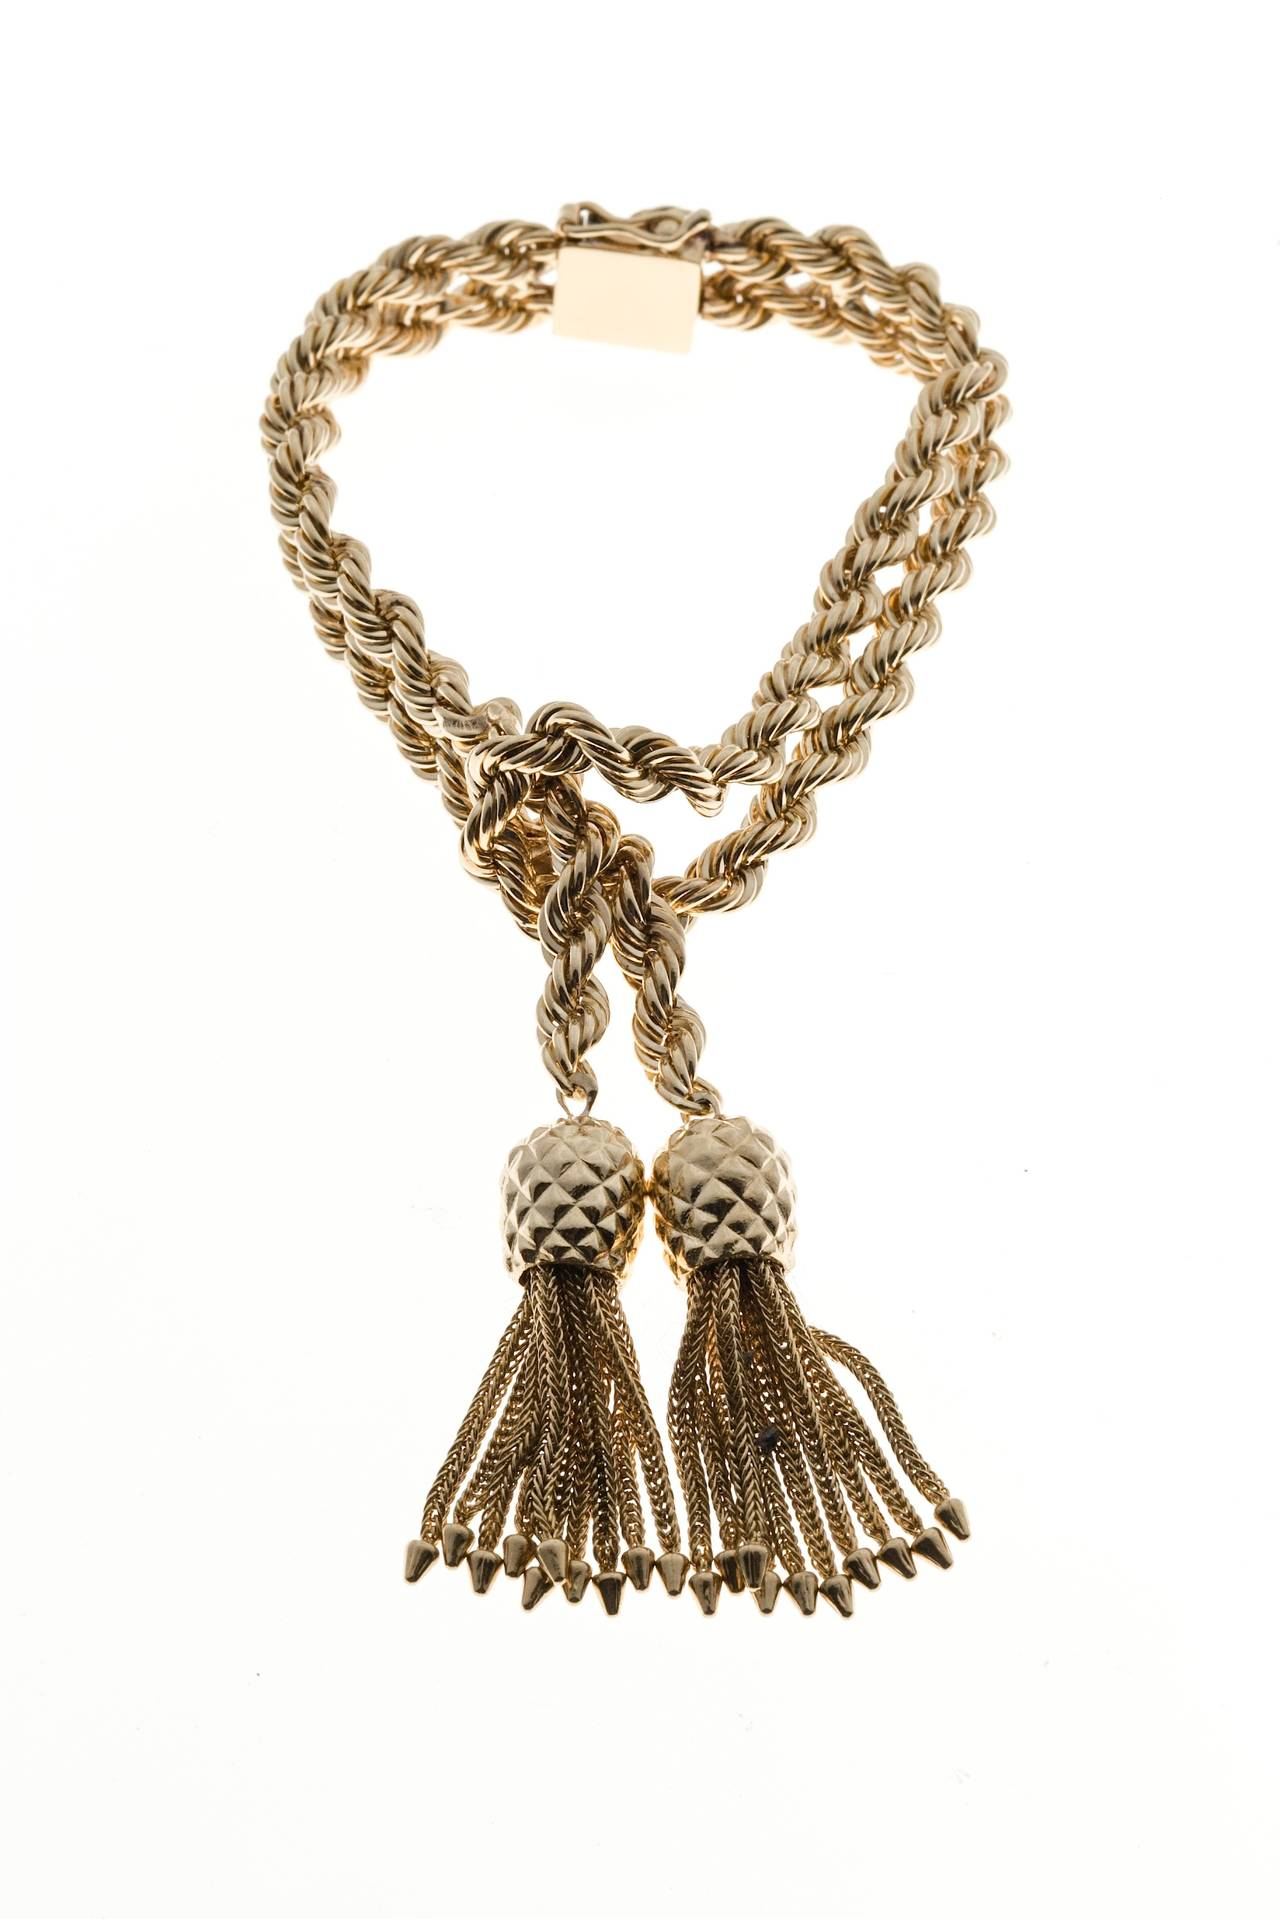 Tiffany & Co. Rope Knot Tassel Gold Bracelet 6